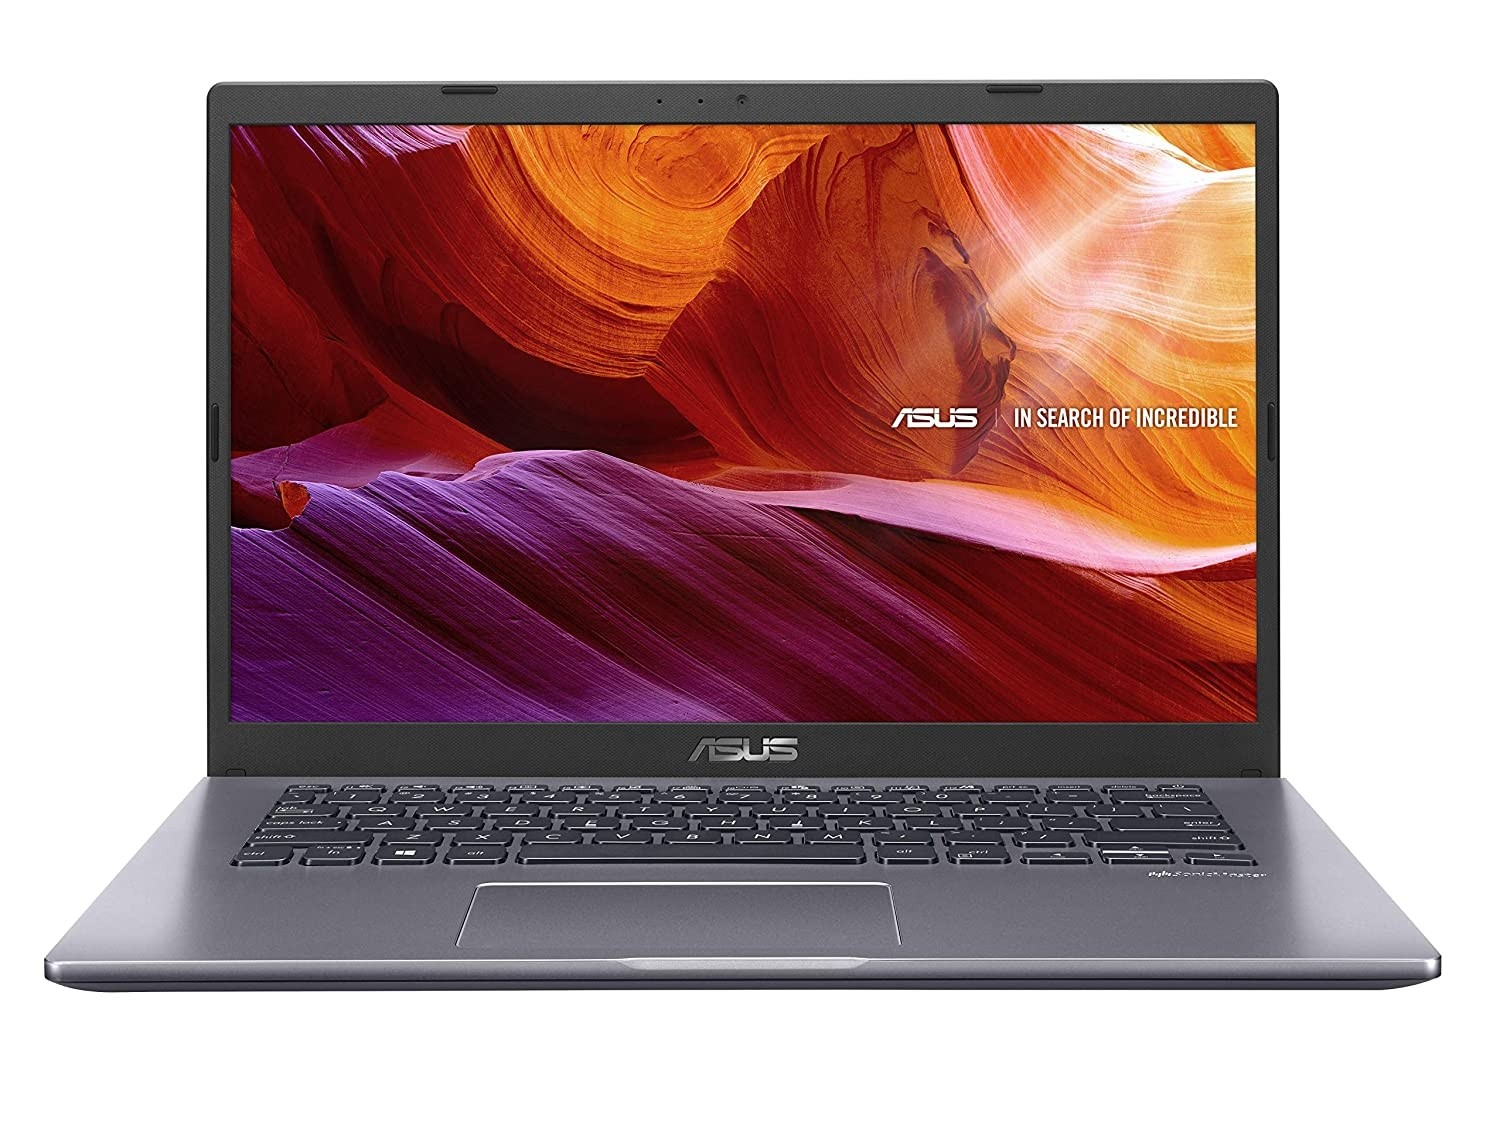 Refurbished laptops & desktops - Asus Vivobook 14 X409Fa-Ek342T Intel Core I3 8TH Gen 14-Inch FHD Compact And Light Laptop (4GB Ram/1TB HDD/Windows 10/Integrated Graphics/FP Reader/1.60 Kg), Slate Grey